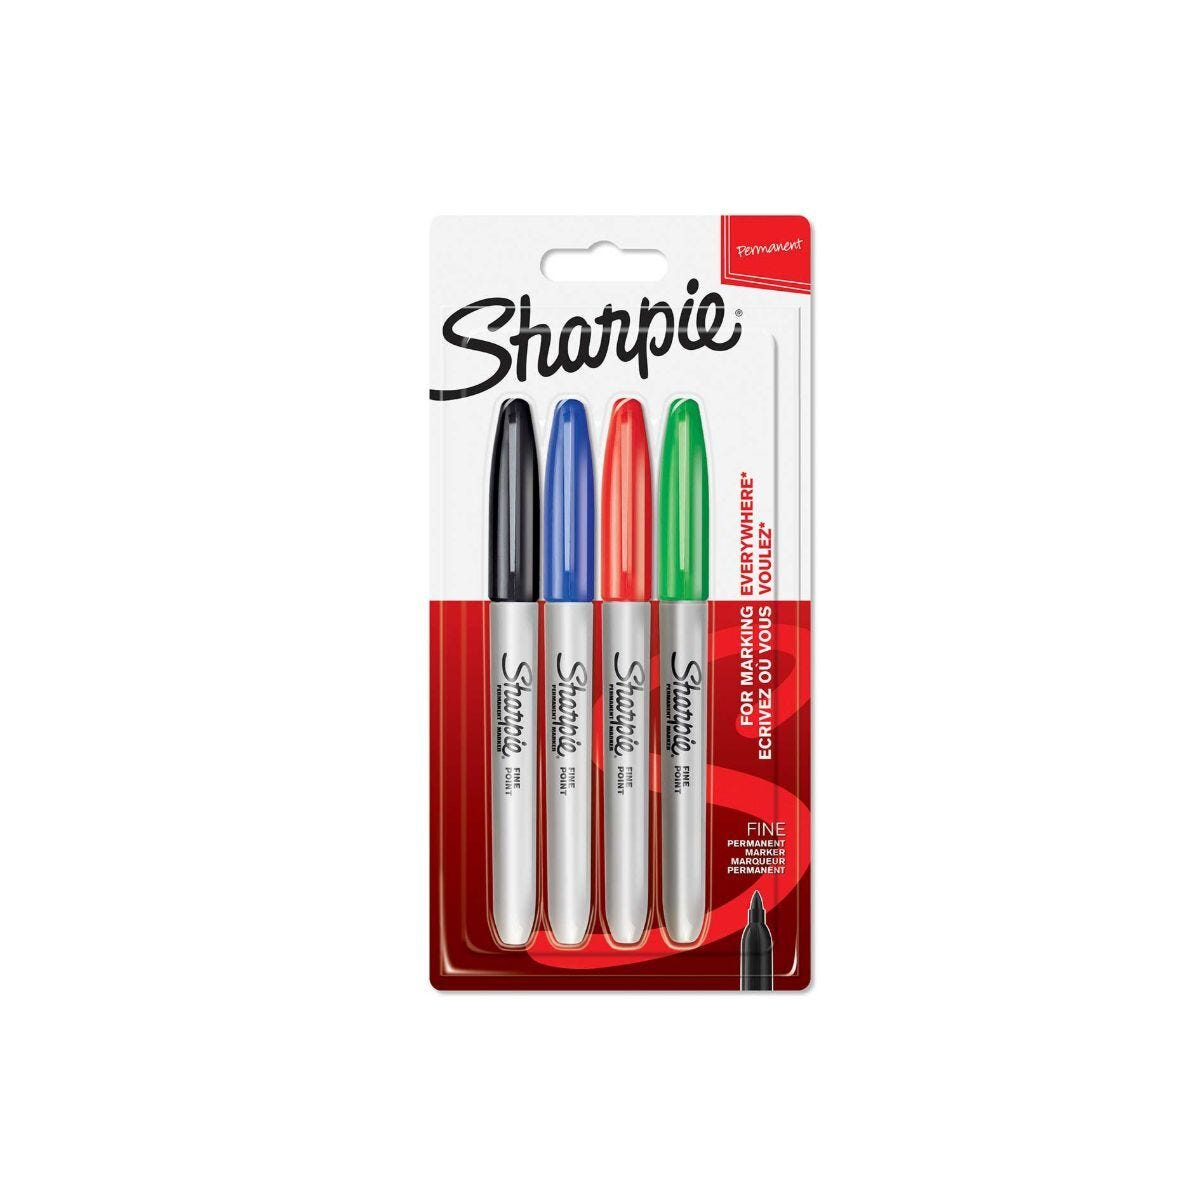 Sharpie Marker Pens Permanent Fine Point Pack of 4